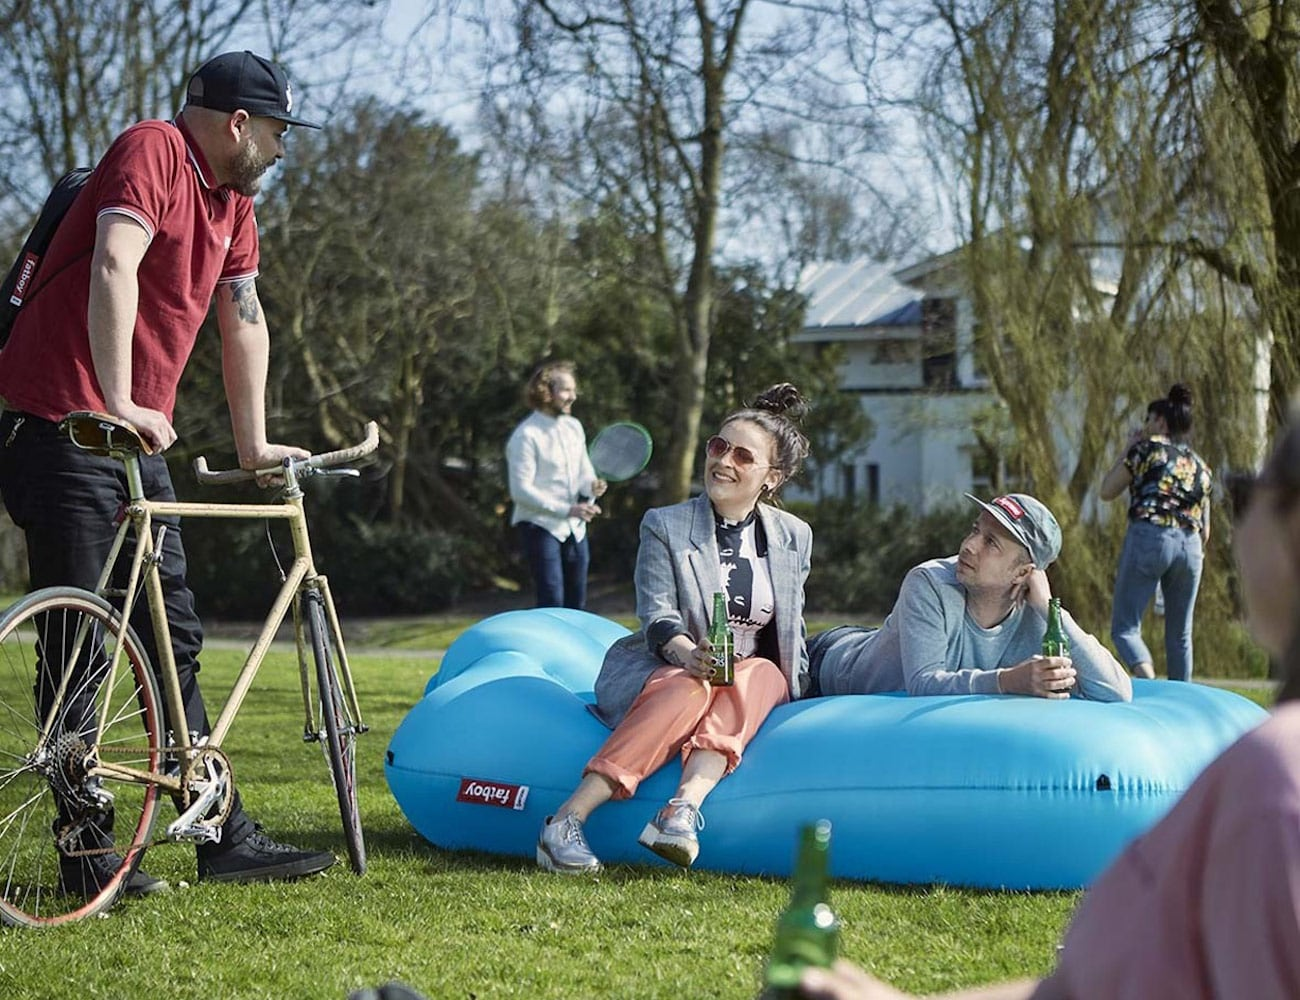 Fatboy Lamzac XXXL Inflatable Lounger inflates in just ten seconds